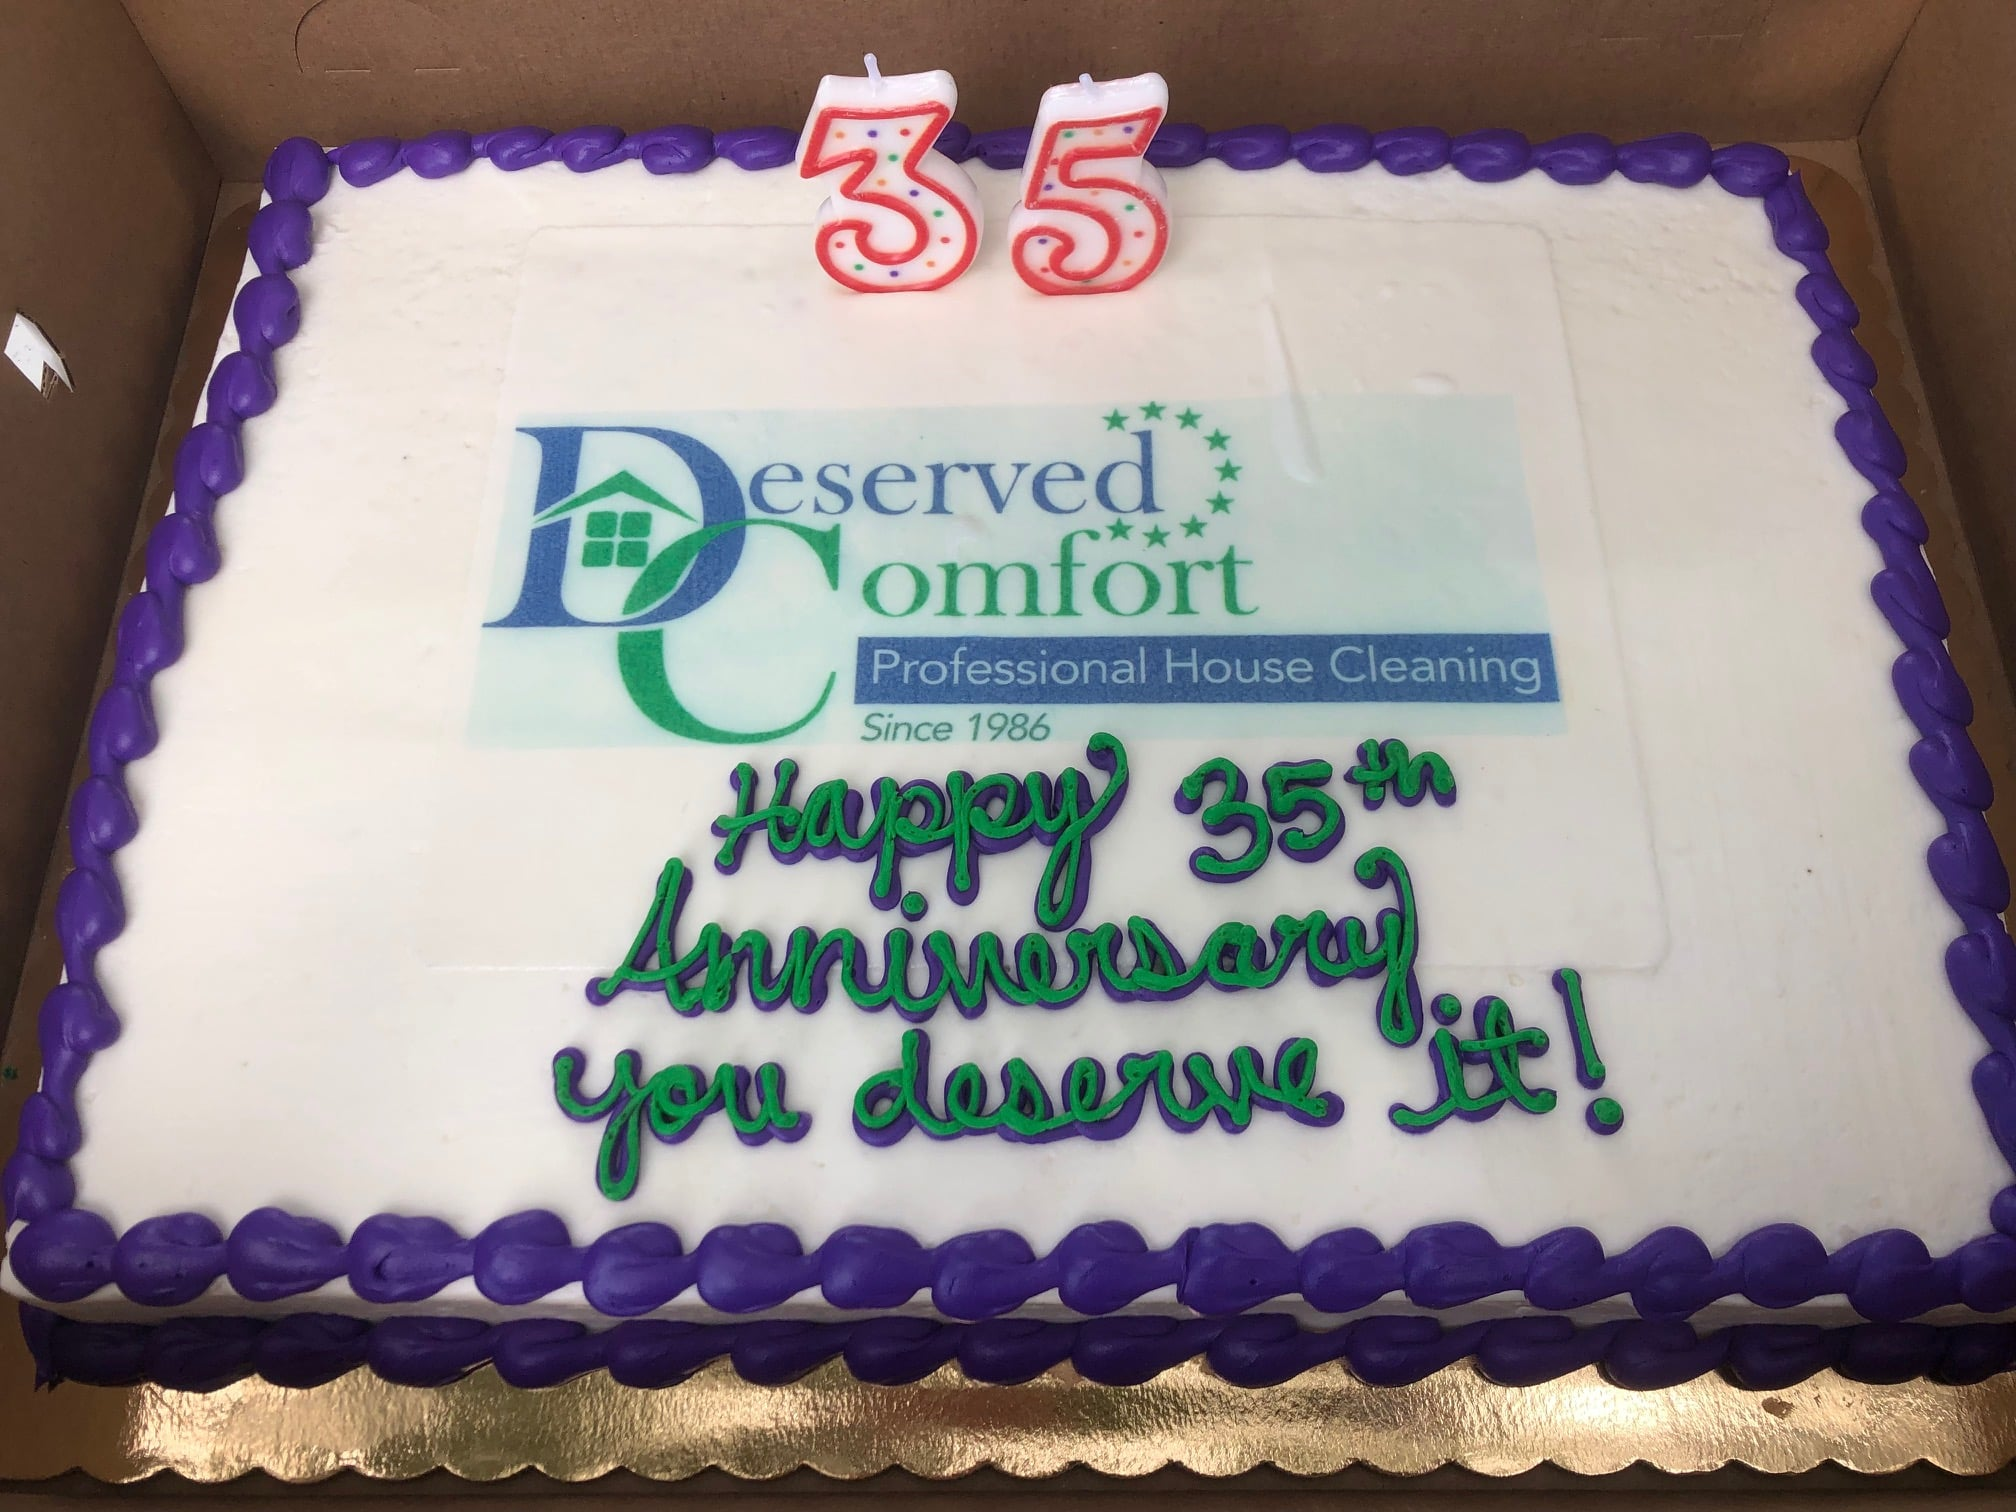 May be an image of cake and text that says '35 eserved omfort Professional Diomo House Cleaning k 1986 Since you deserve زt!'